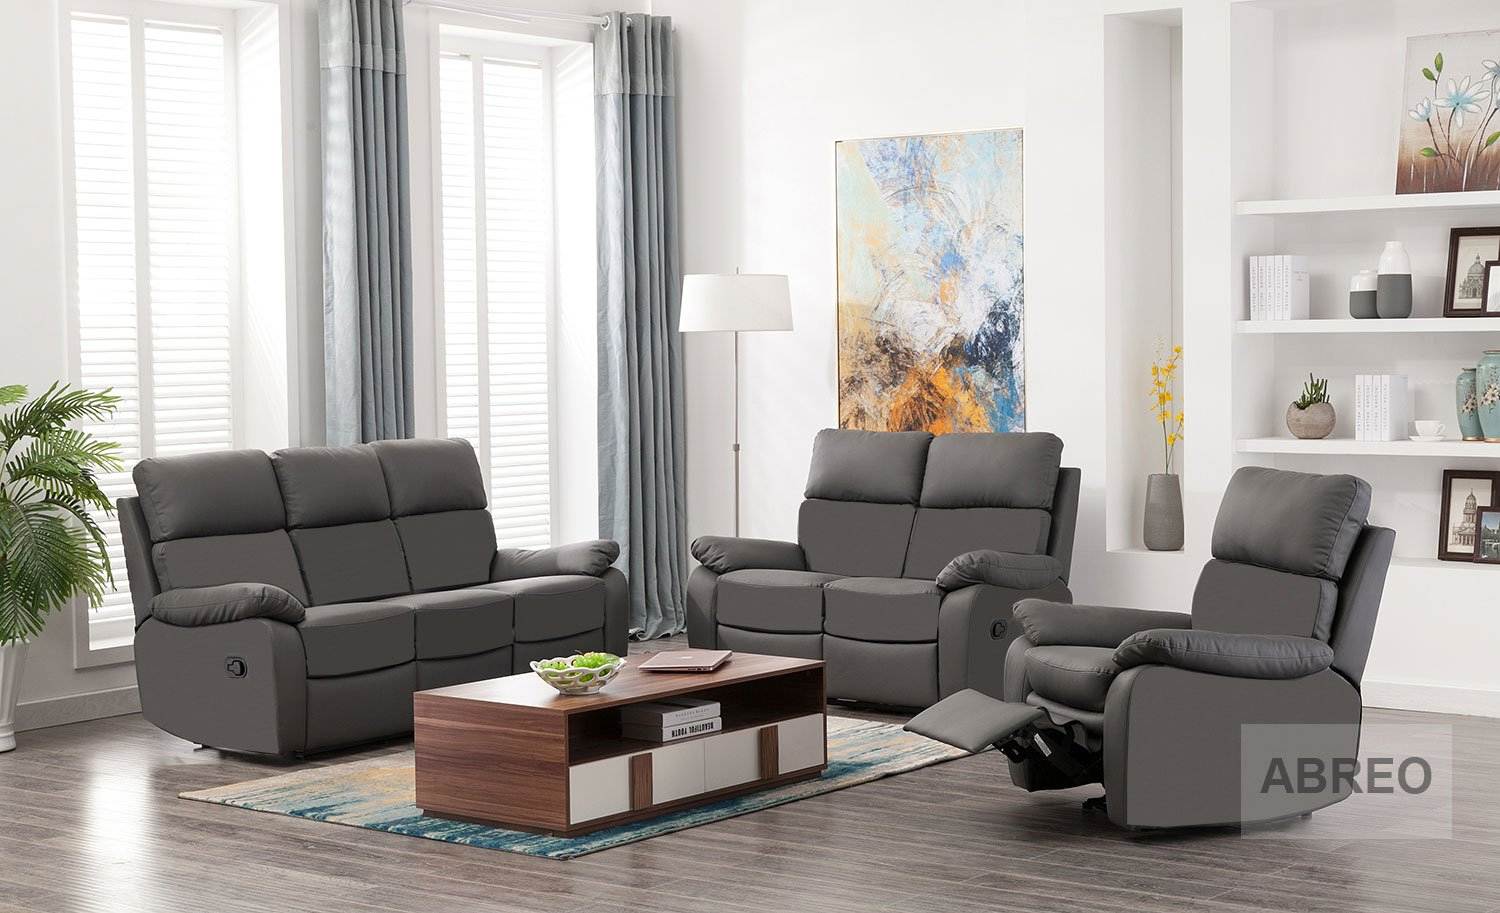 Seater Leather Recliner Sofa Reclining Armchairs Living Room With Amala Dark Grey Leather Reclining Swivel Chairs (Image 23 of 25)